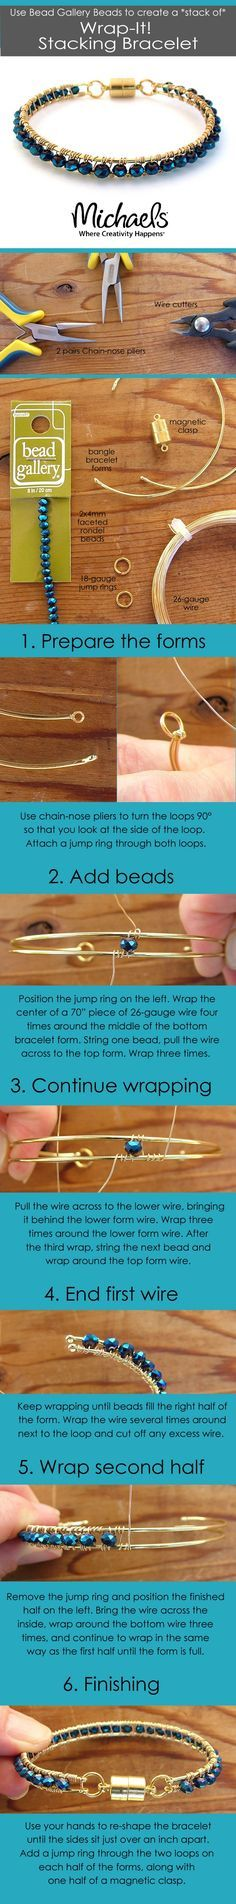 Use Bead Gallery Beads to create a stack of Wrap-it Stacking Bracelet. Available…